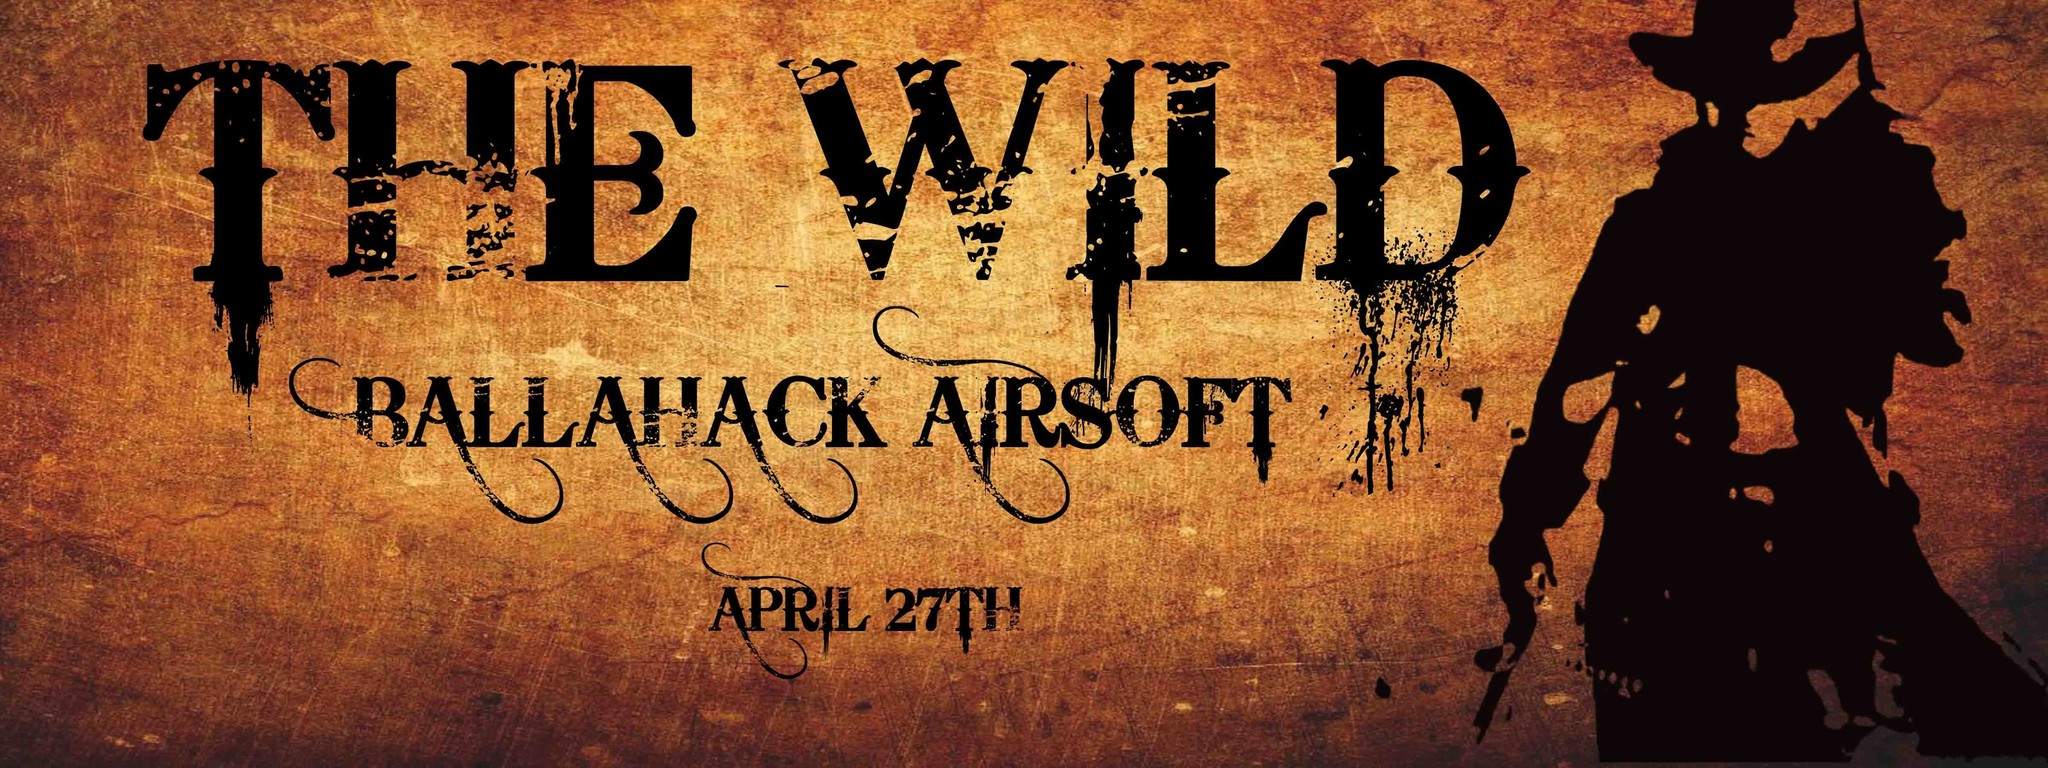 Ballahack Airsoft The Wild-April 27th, 2019